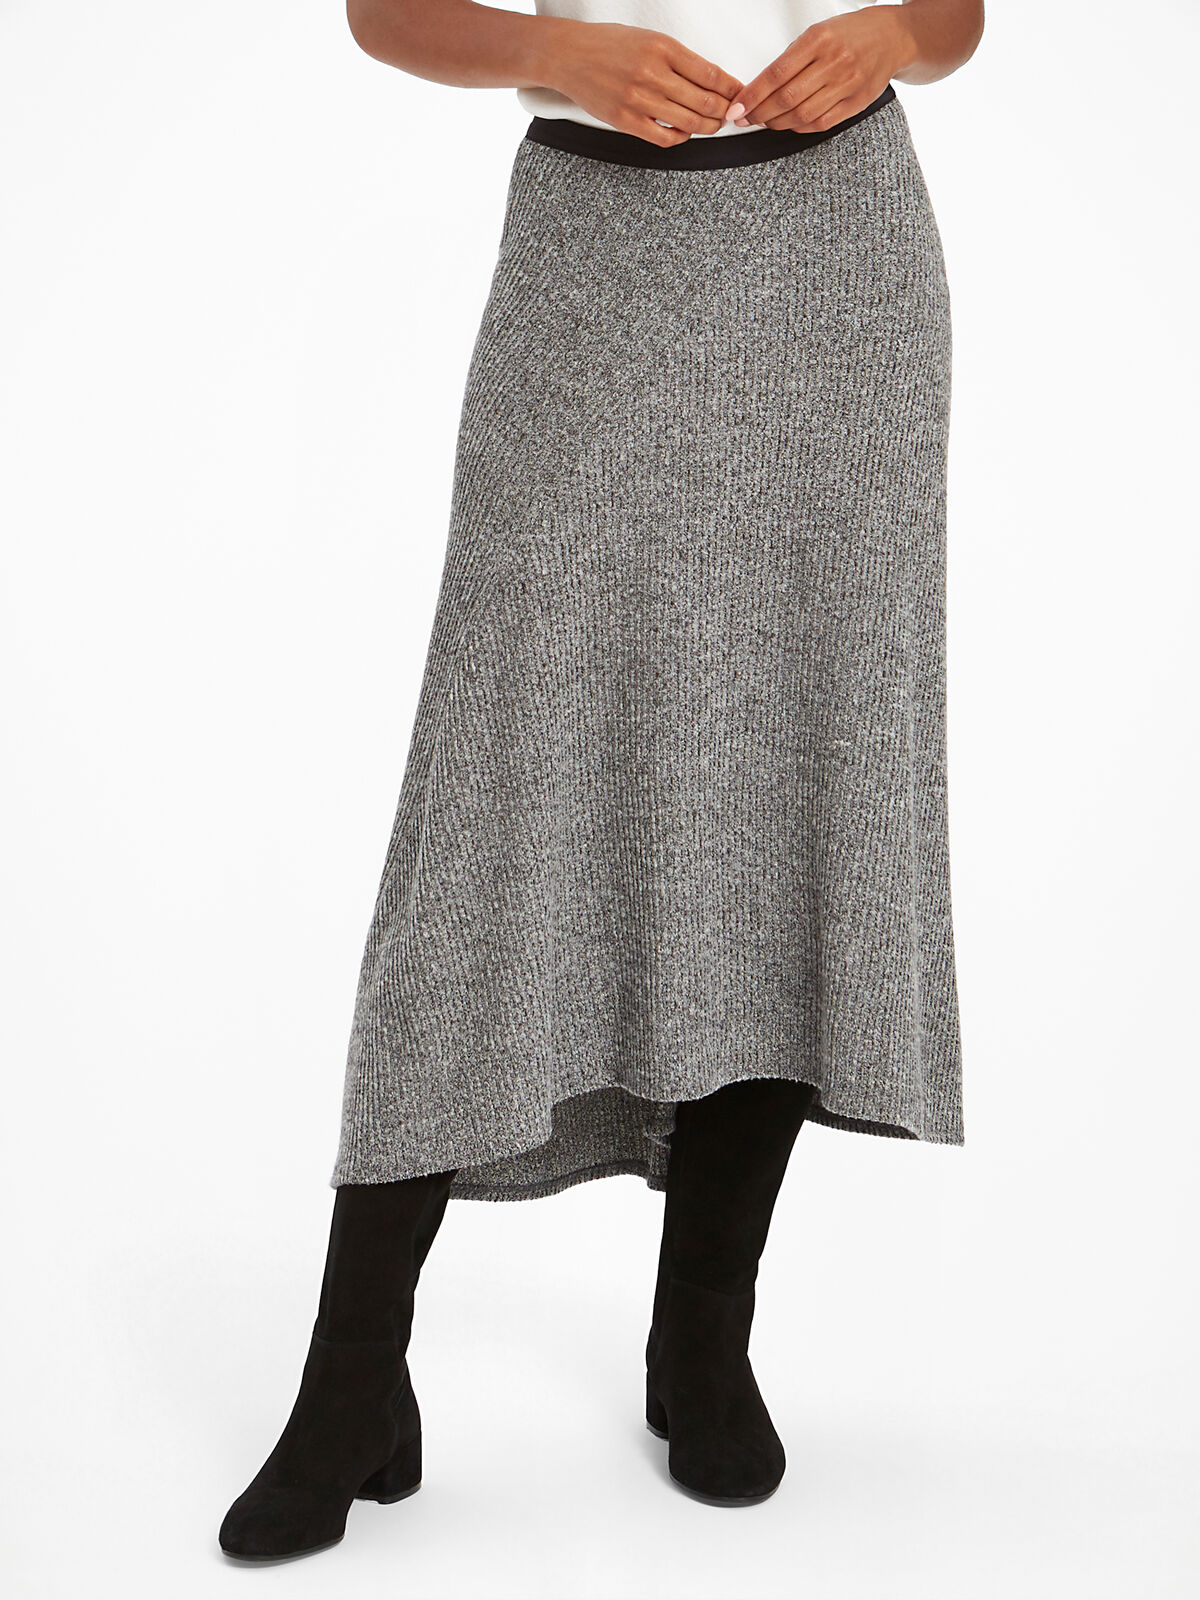 Cozy Aside Skirt